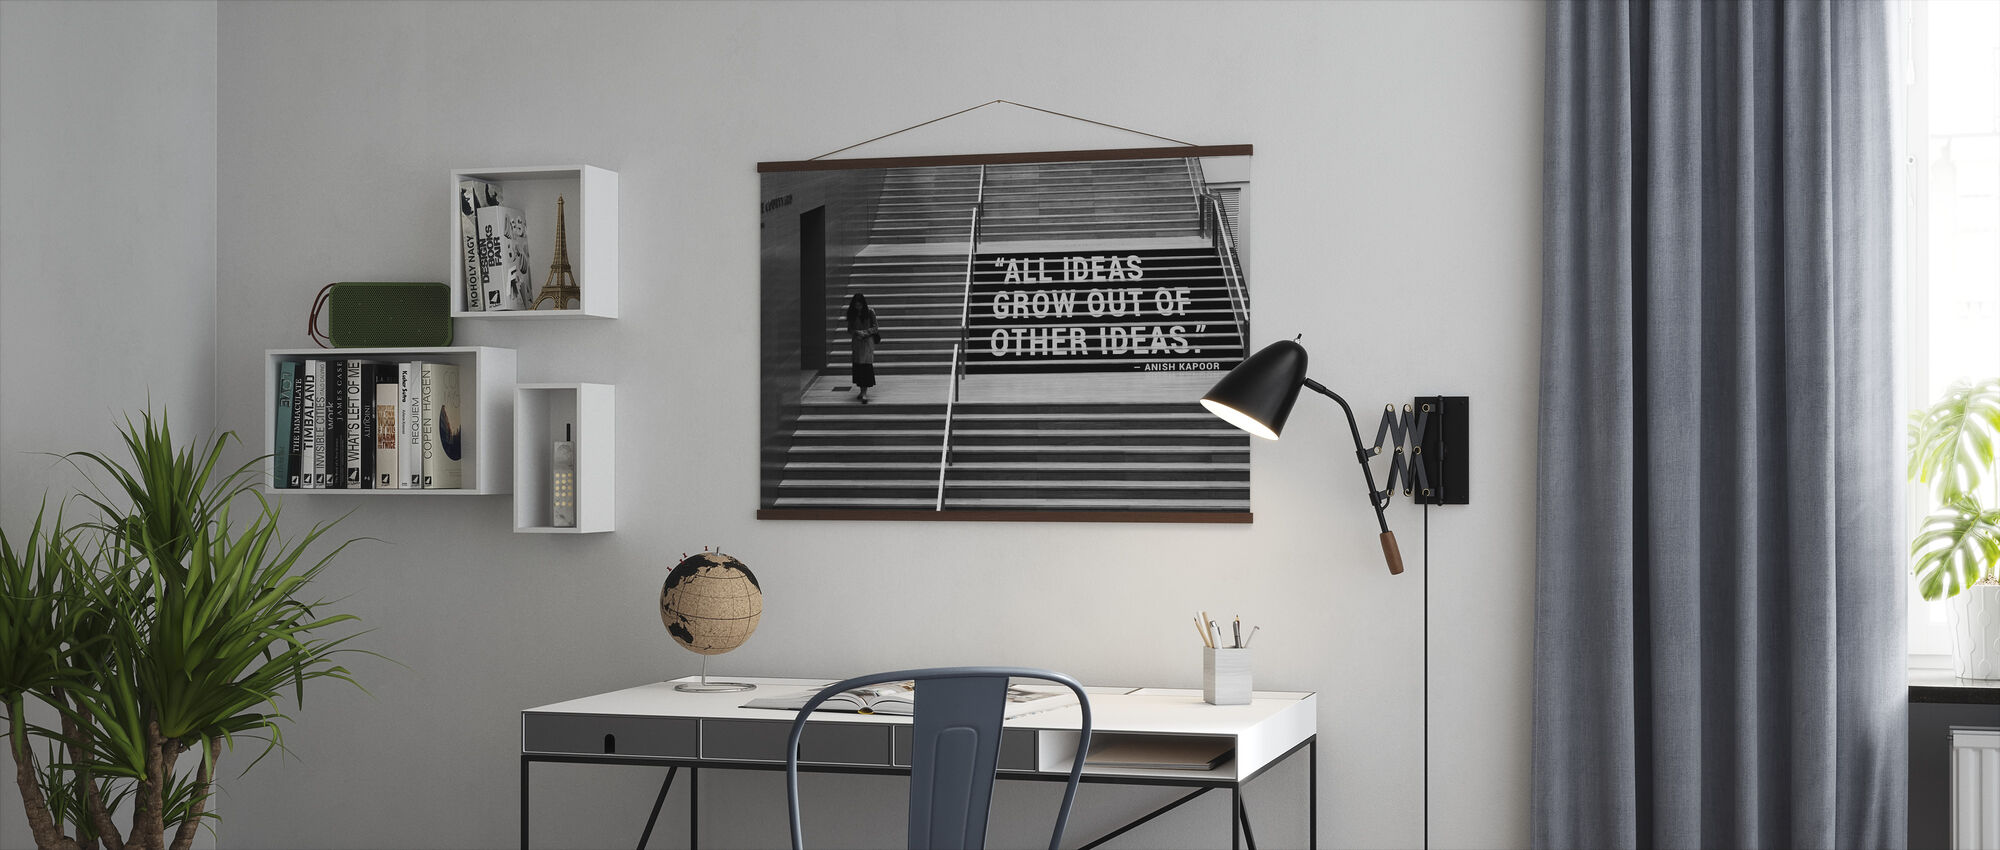 Idea and Creativity - Poster - Office